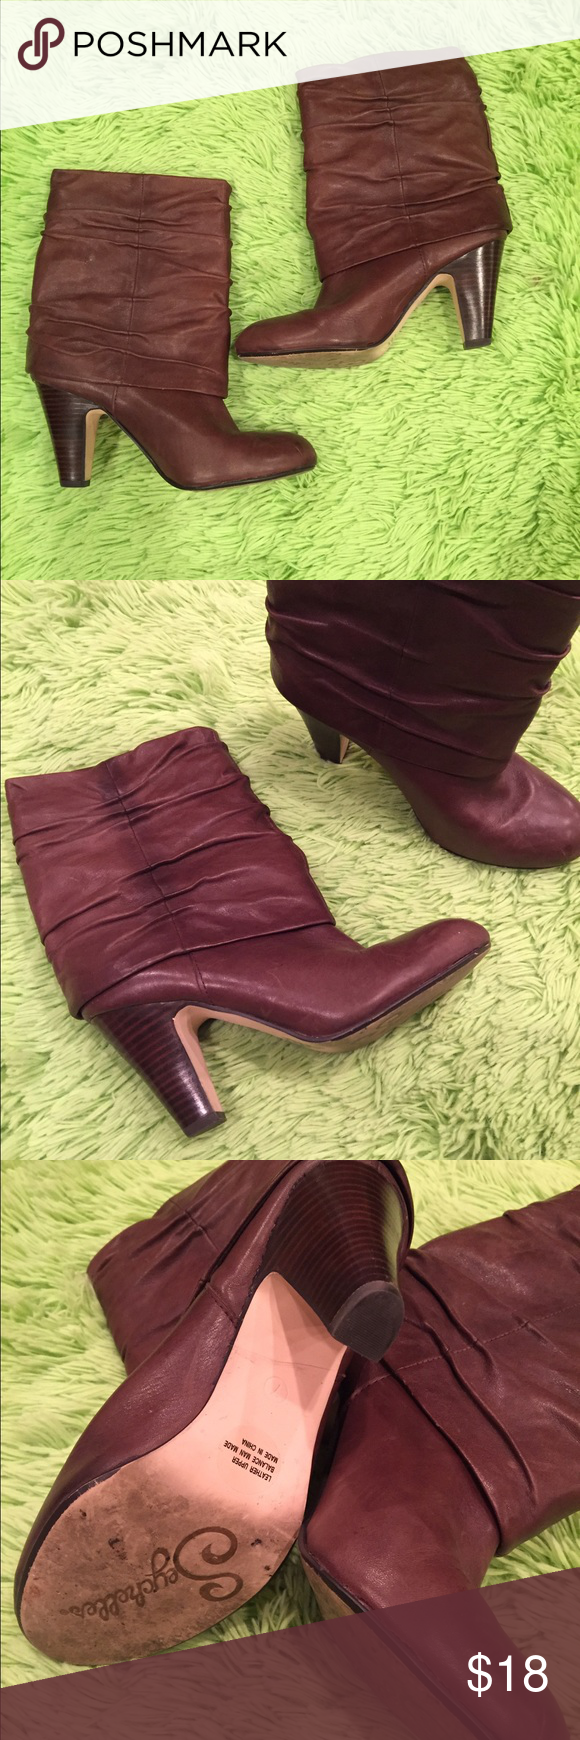 Seychelles Brown leather booties Cute brown leather booties - only worn a few times.... size 7 but guys more like a 7 1/2 Seychelles Shoes Ankle Boots & Booties